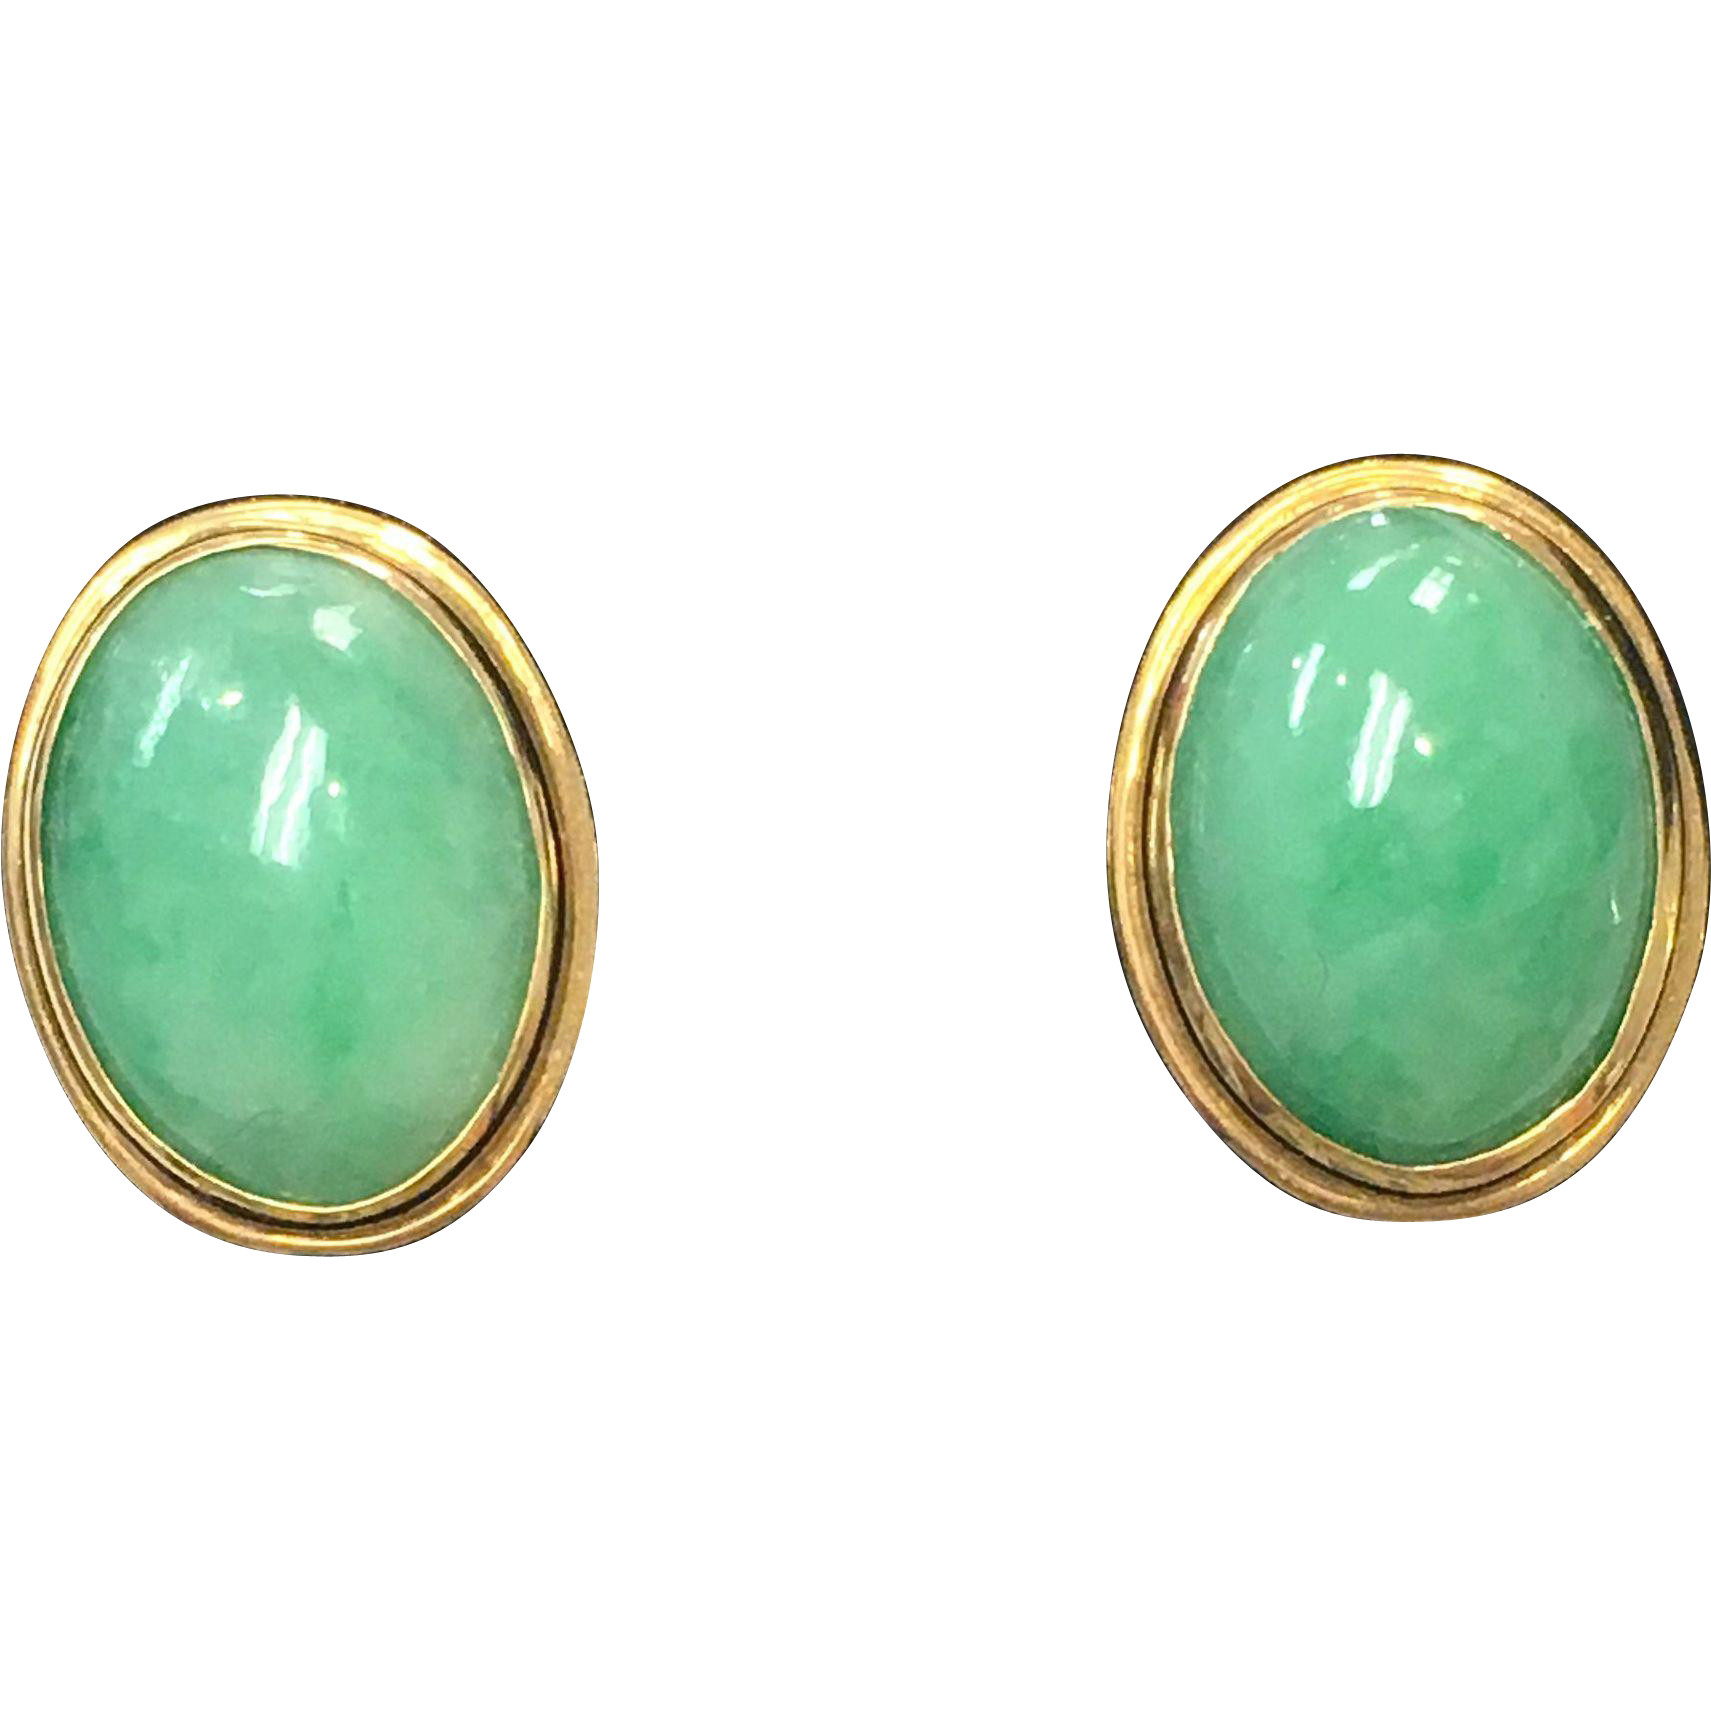 Vintage Green Jade Cabochon Oval Pierced Earrings in 14k Yellow Gold